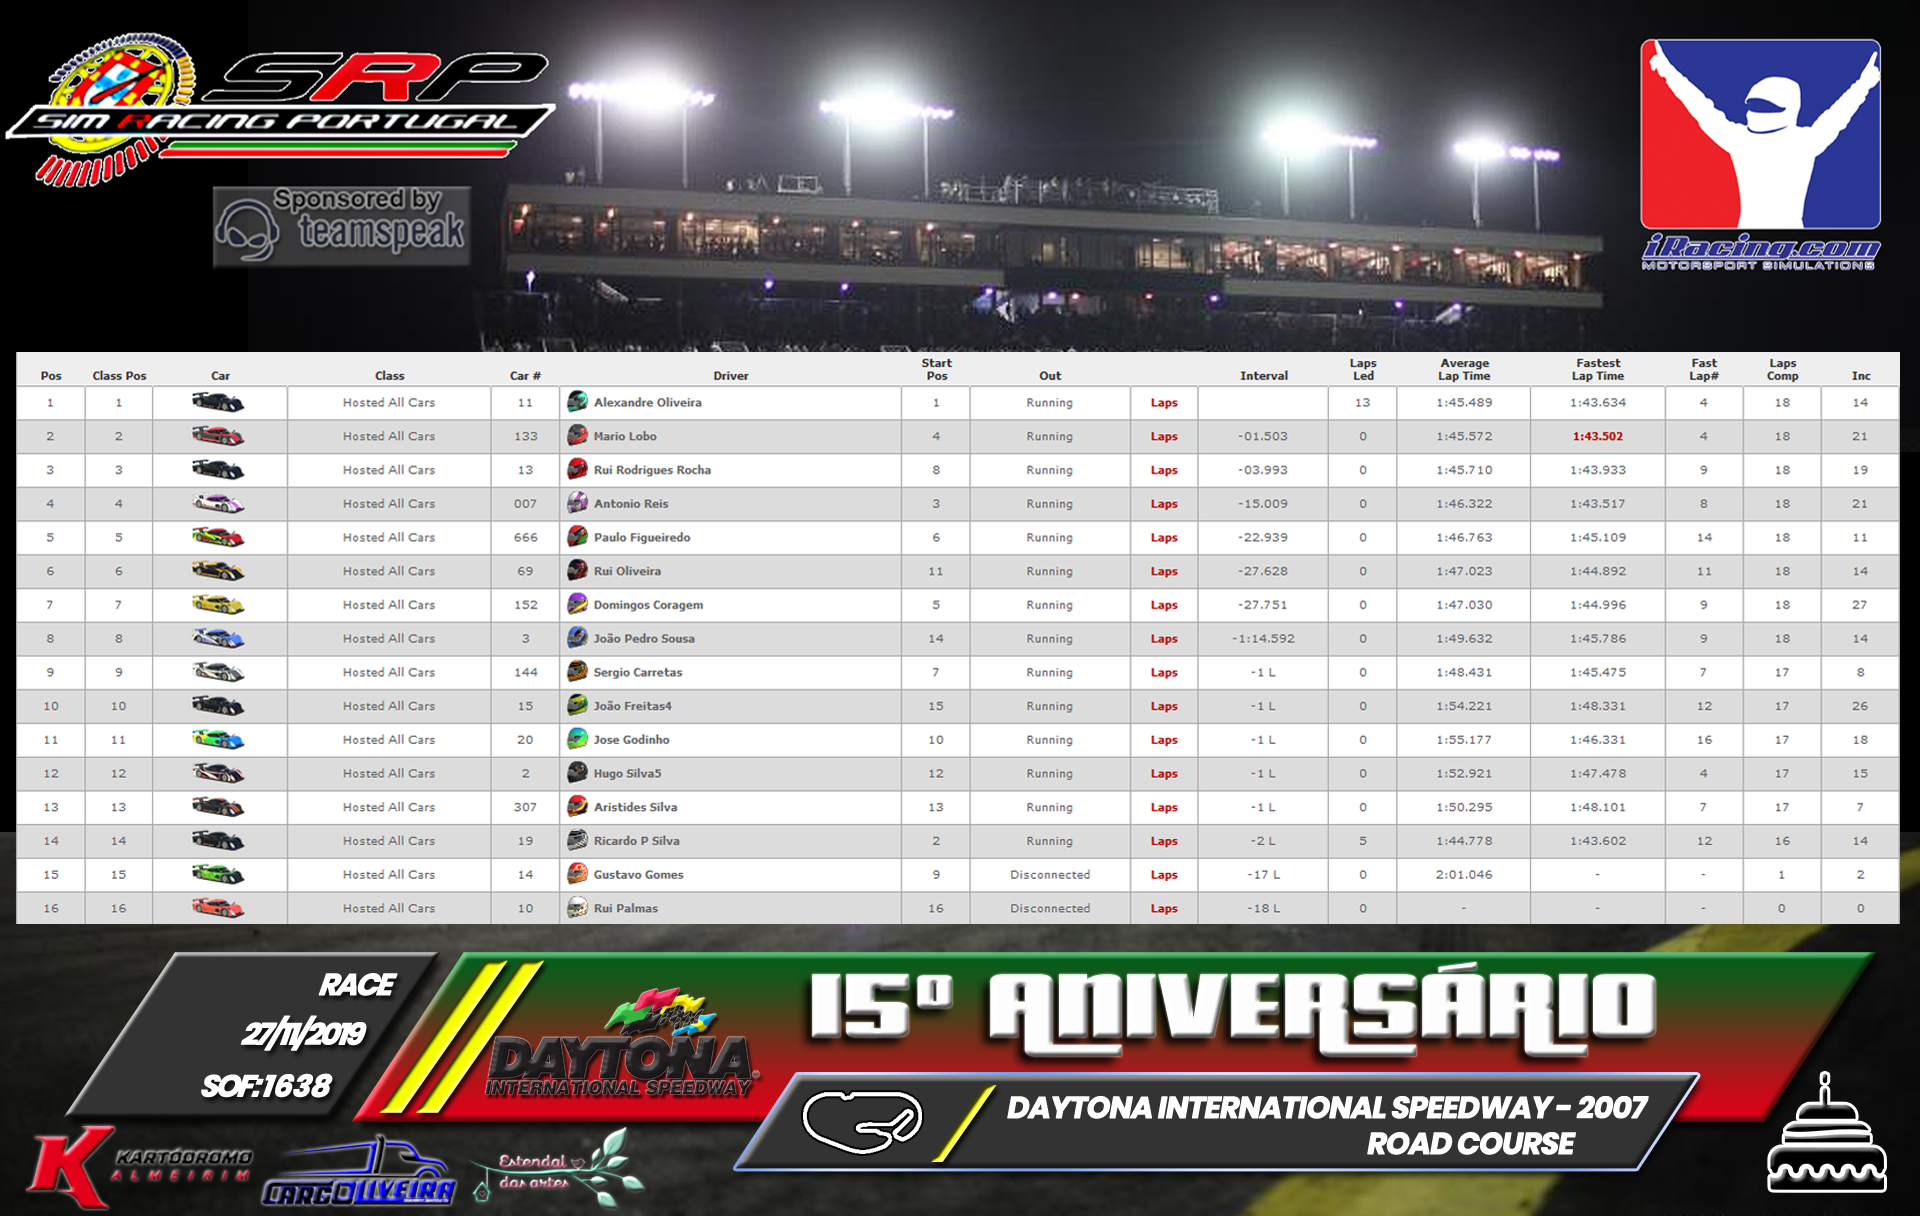 [Image: RaceResults2019-1-1.png]